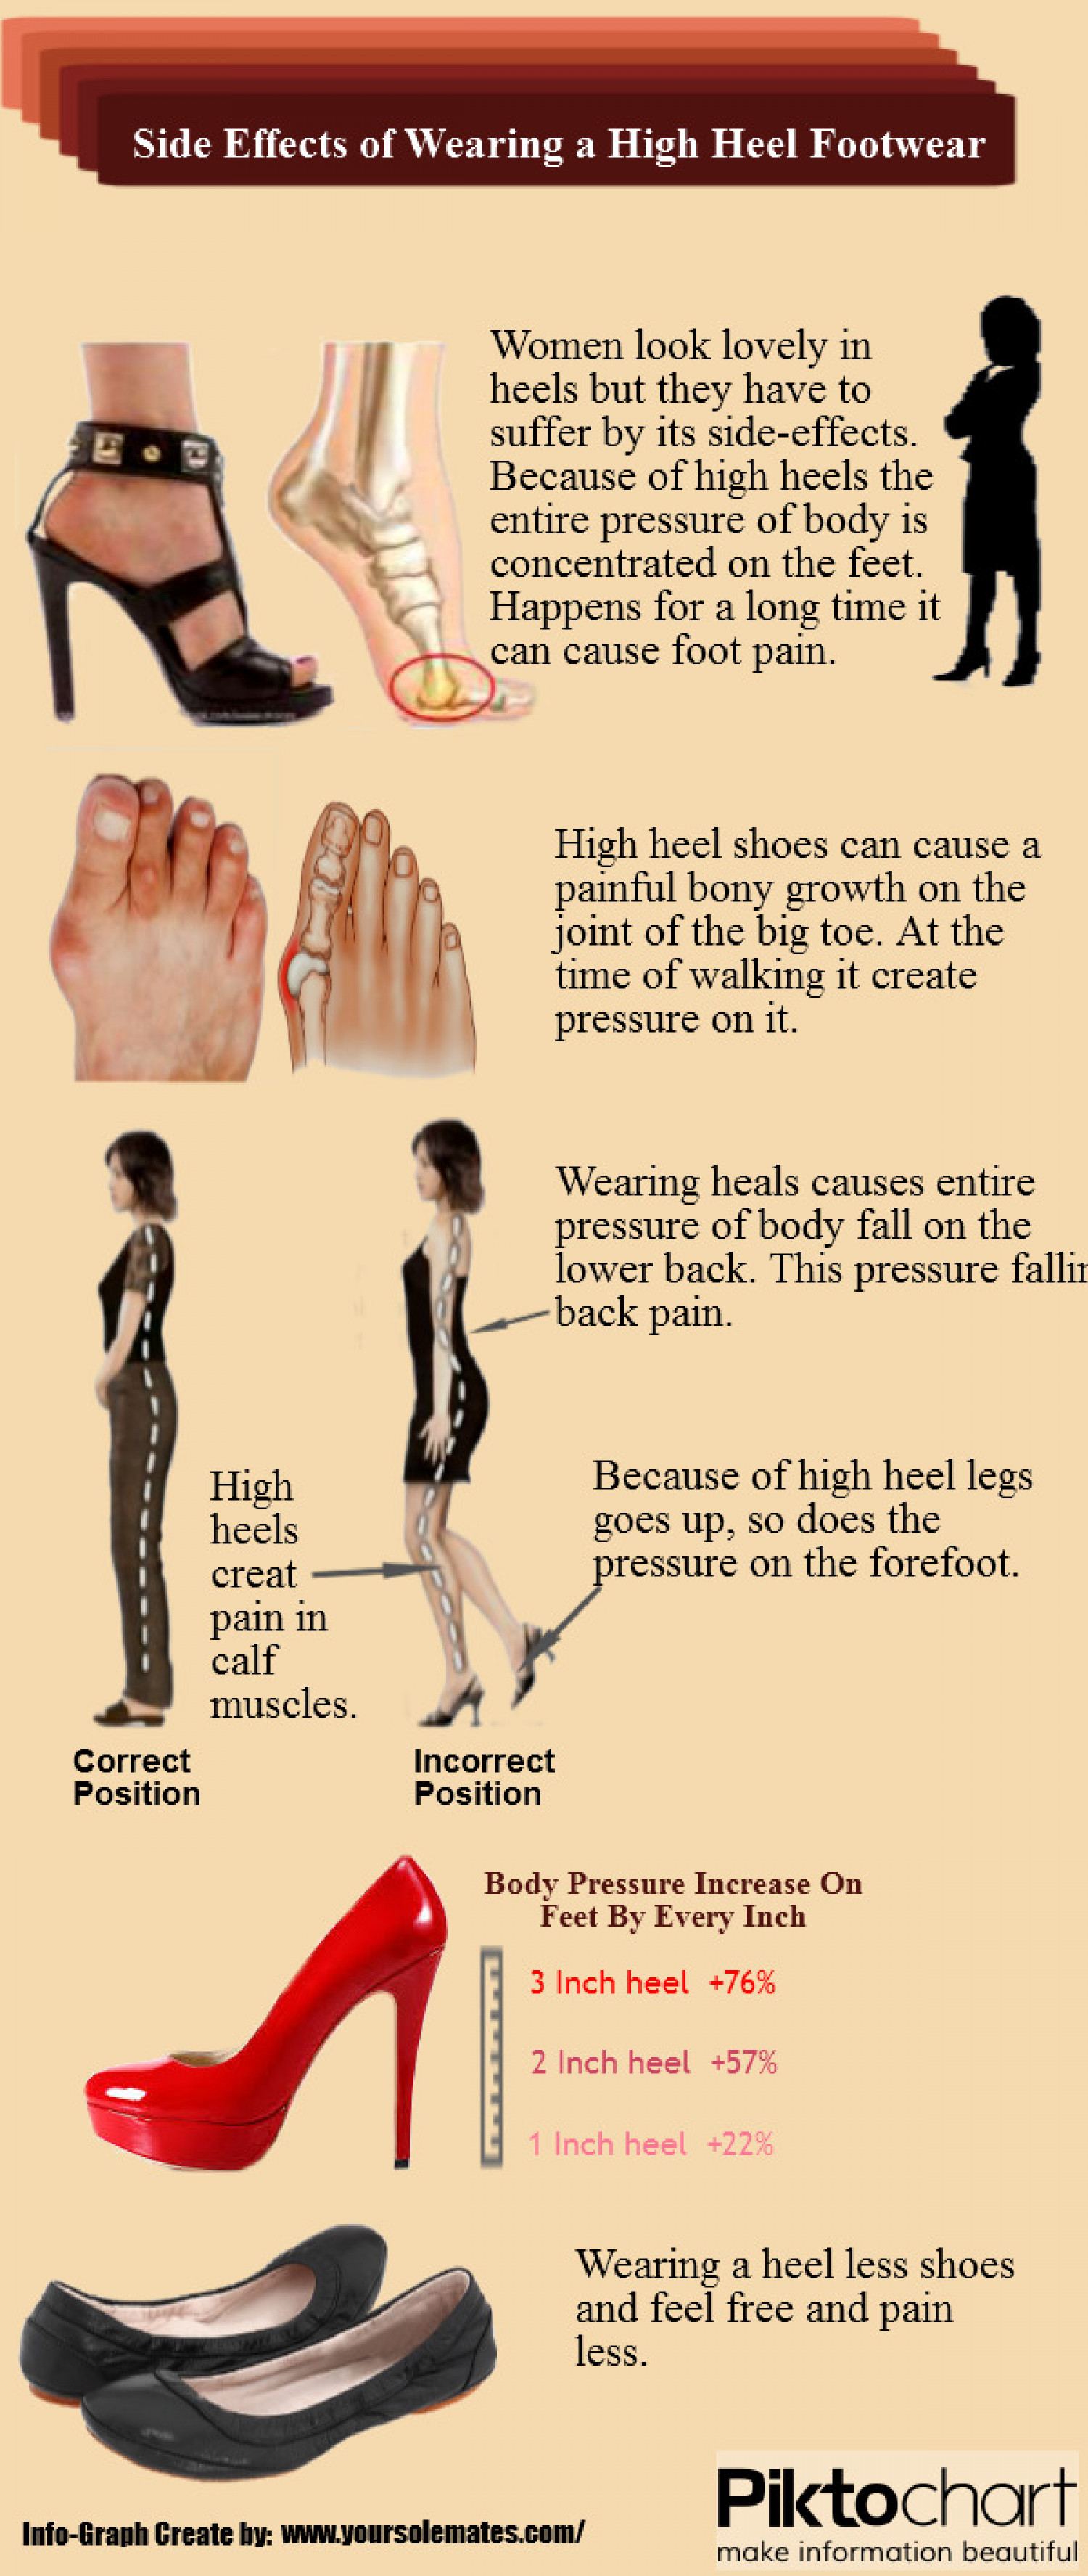 Side Effects of Wearing a High Heel Footwear Infographic